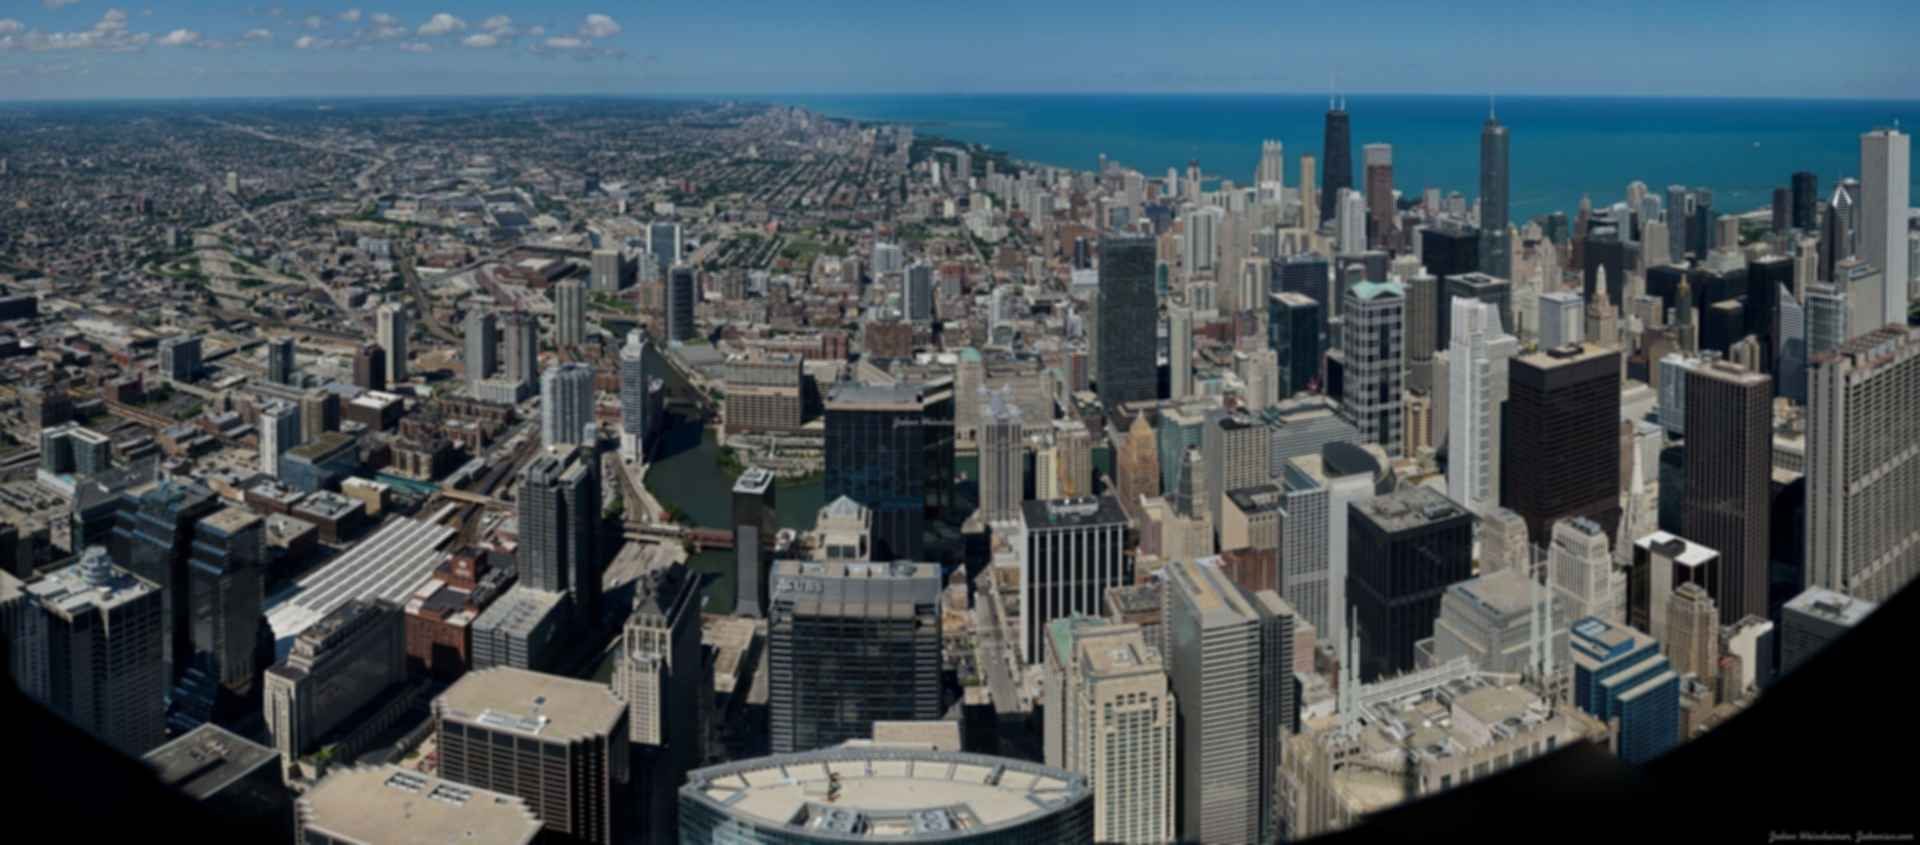 Willis Tower - Panoramic view from building